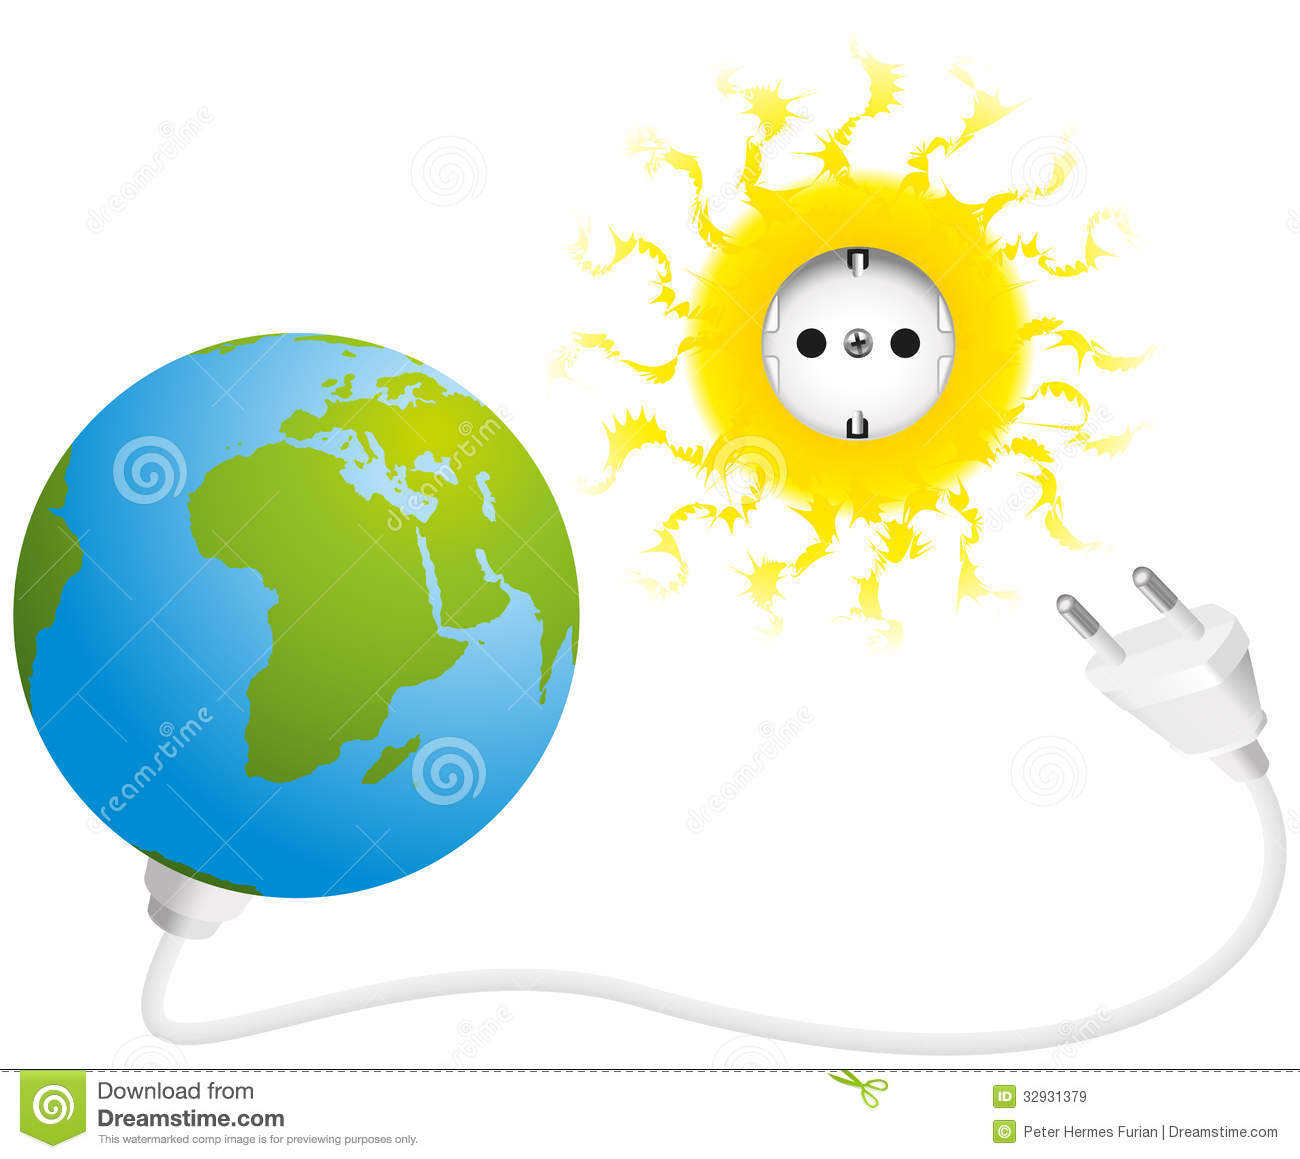 Illustration of sun, earth, socket and plug, a symbol for solar energy ...